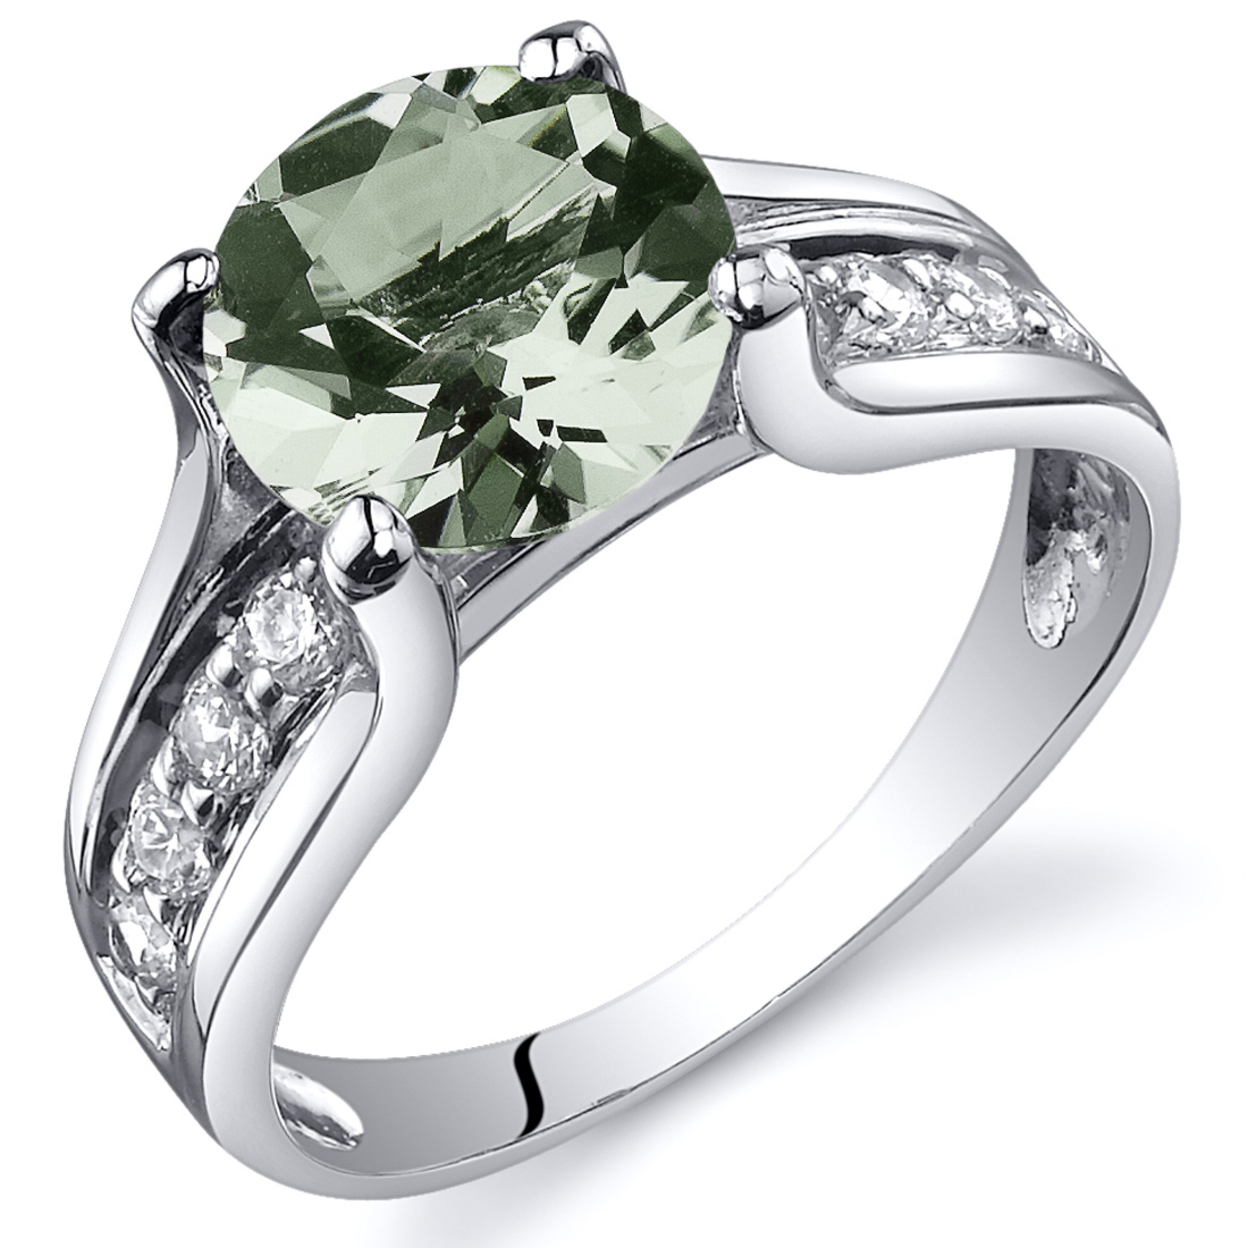 Oravo 1.75 Ct Green Amethyst Solitaire Ring In Rhodium-plated Sterling Silver, Sizes 5-9